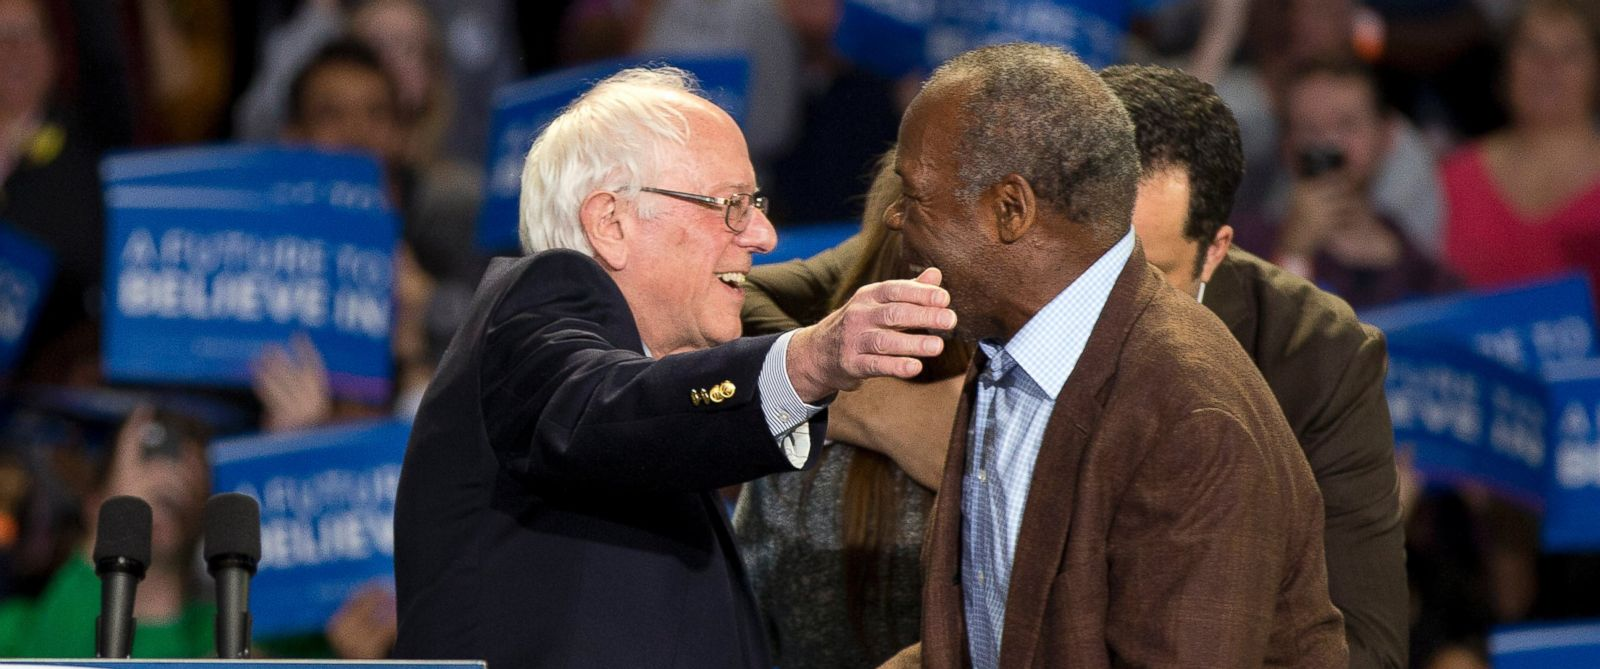 PHOTO: Democratic presidential candidate Sen. Bernie Sanders, left, embraces actor Danny Glover, during a rally, Feb. 21, 2016, in Greenville, S.C.